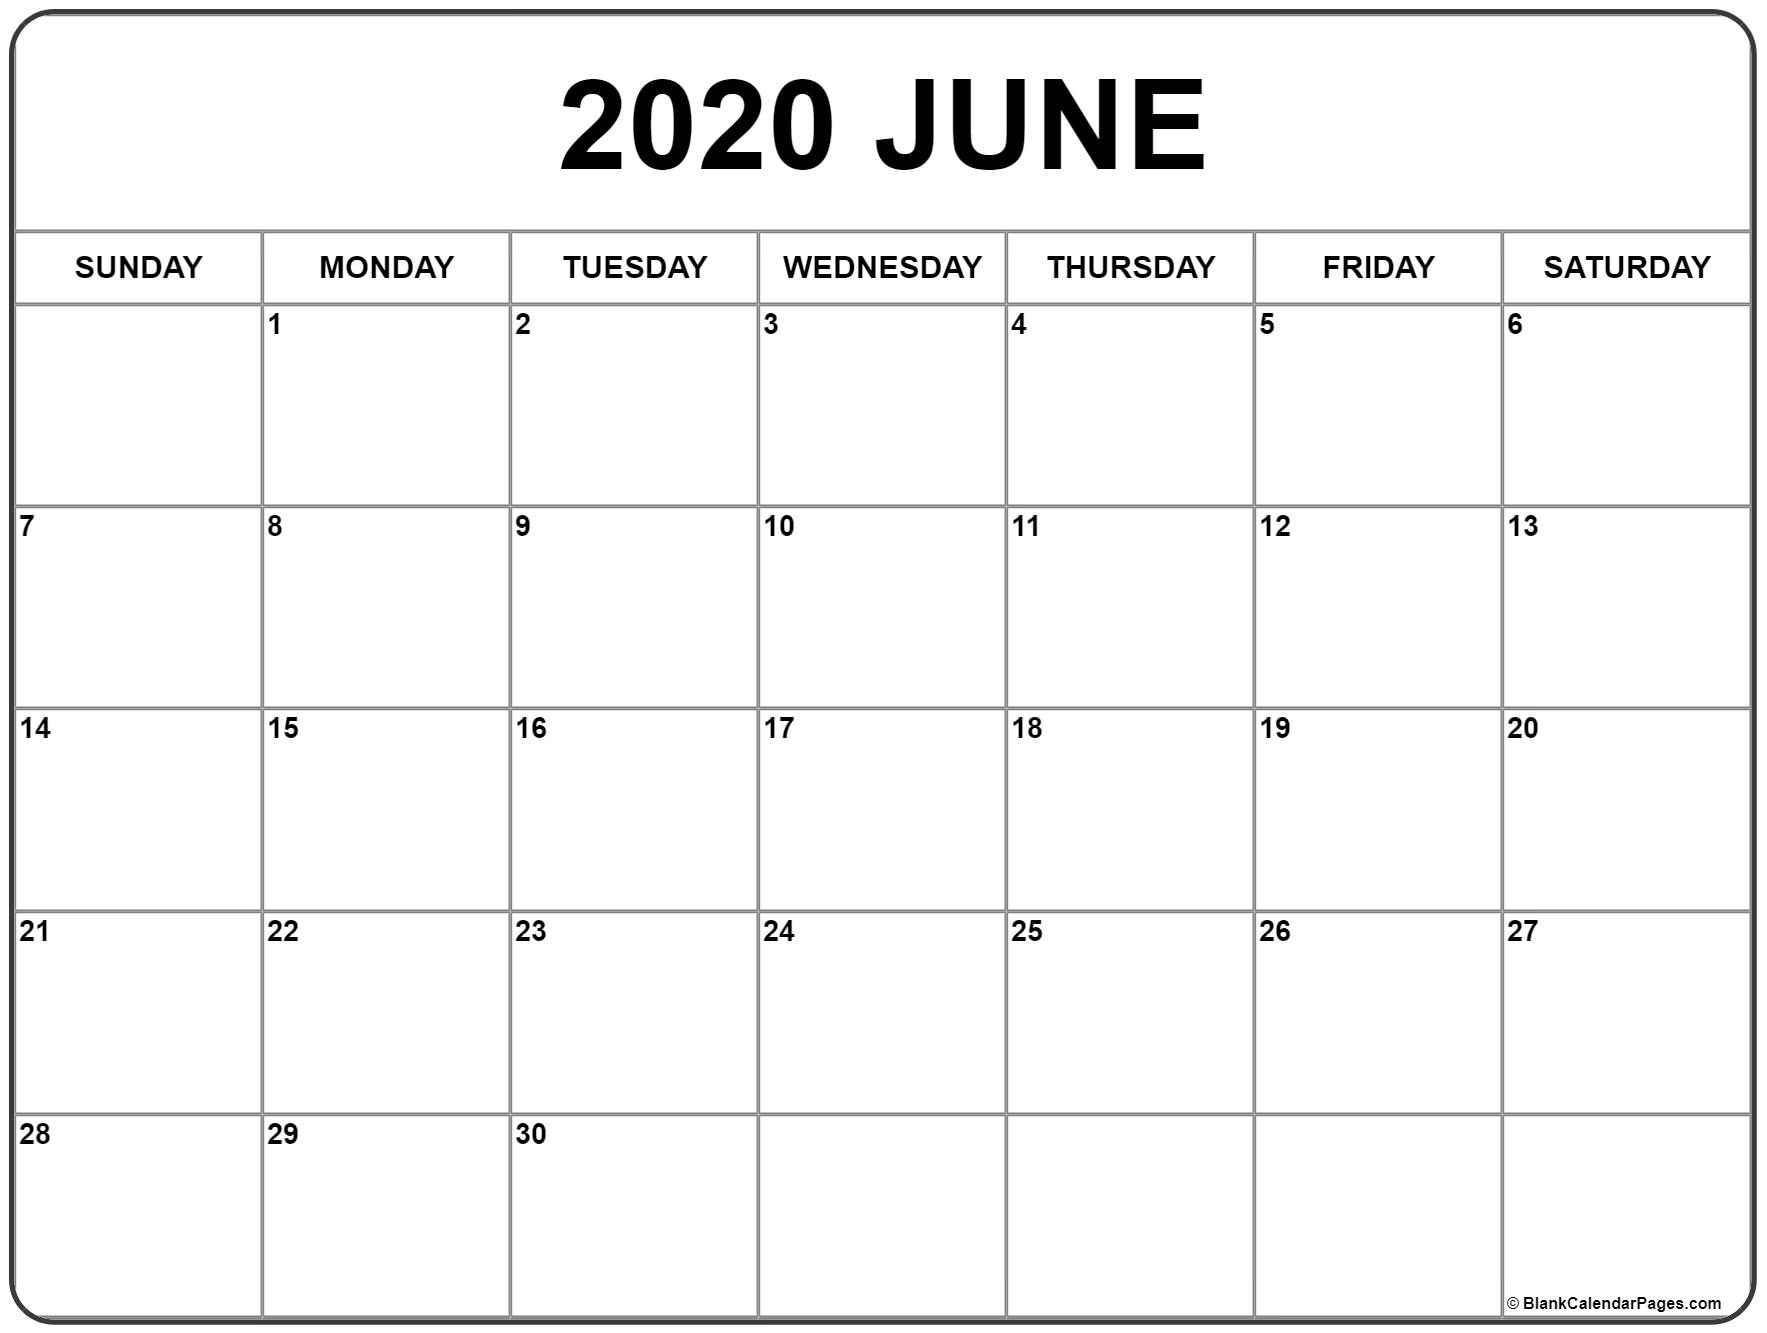 June 2020 Calendar | Free Printable Monthly Calendars inside 2020 Calendar With All Function